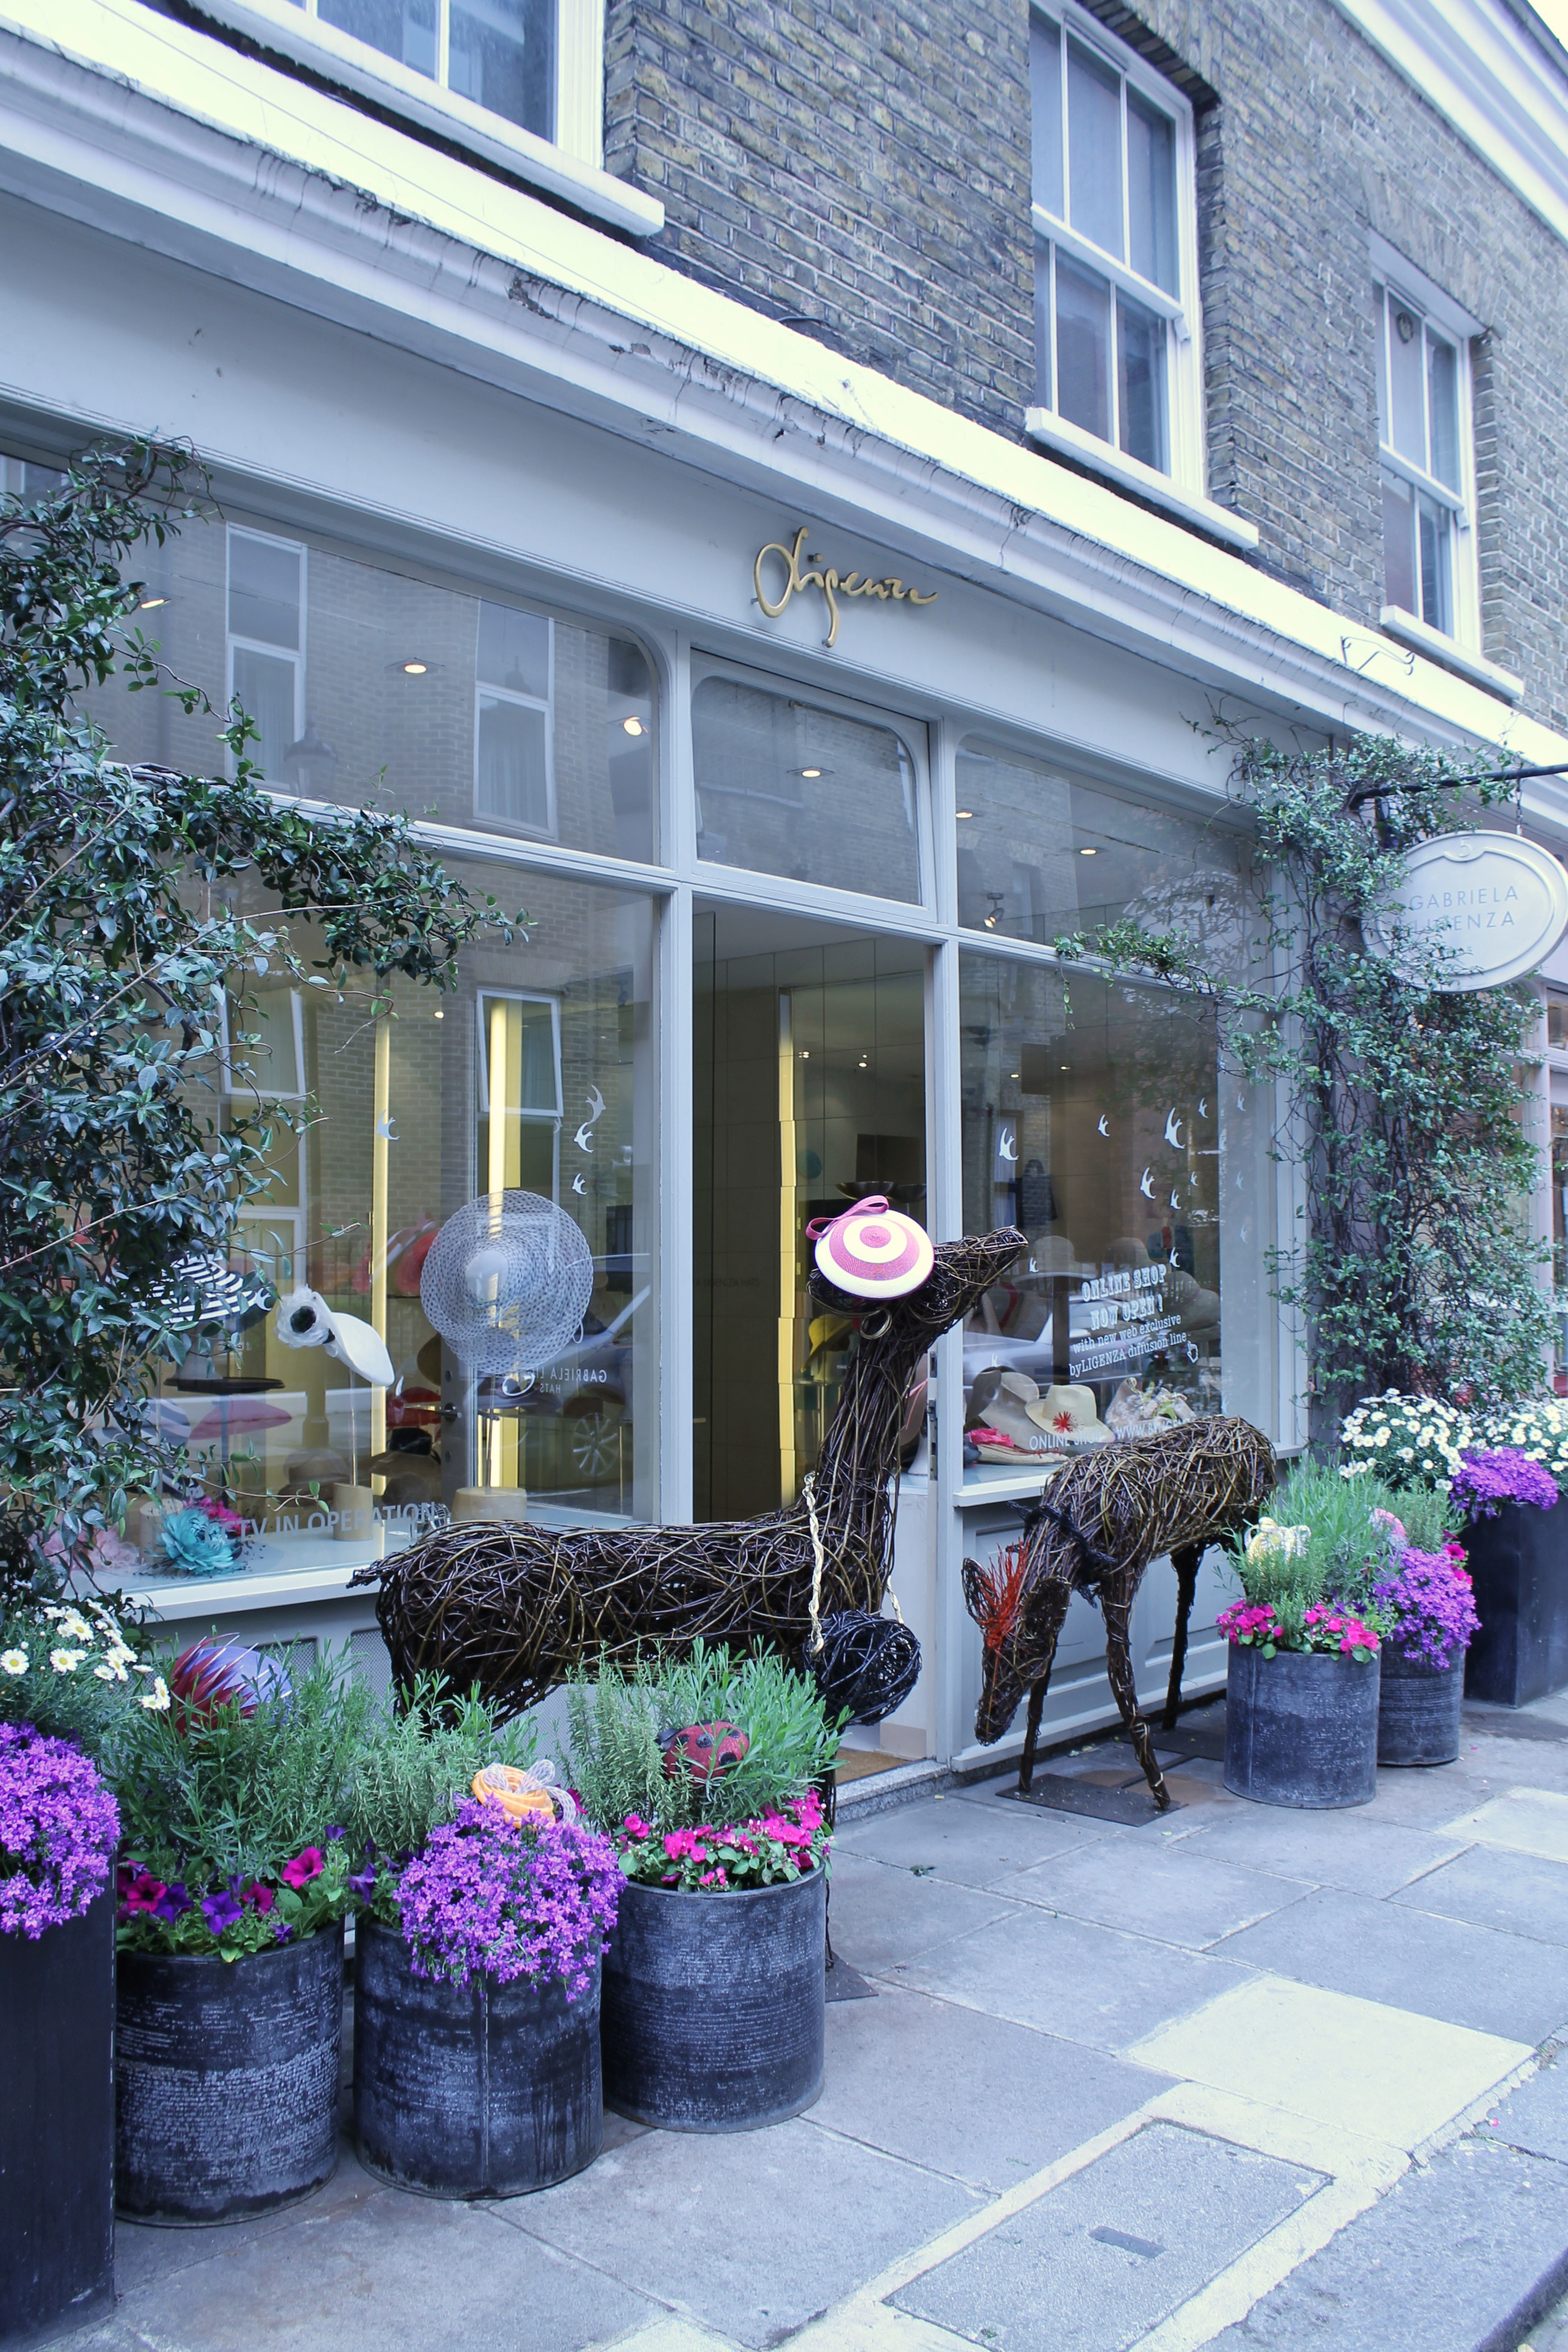 Trm teams up with emma stothard for chelsea window display gabriela ligenza hat blog the